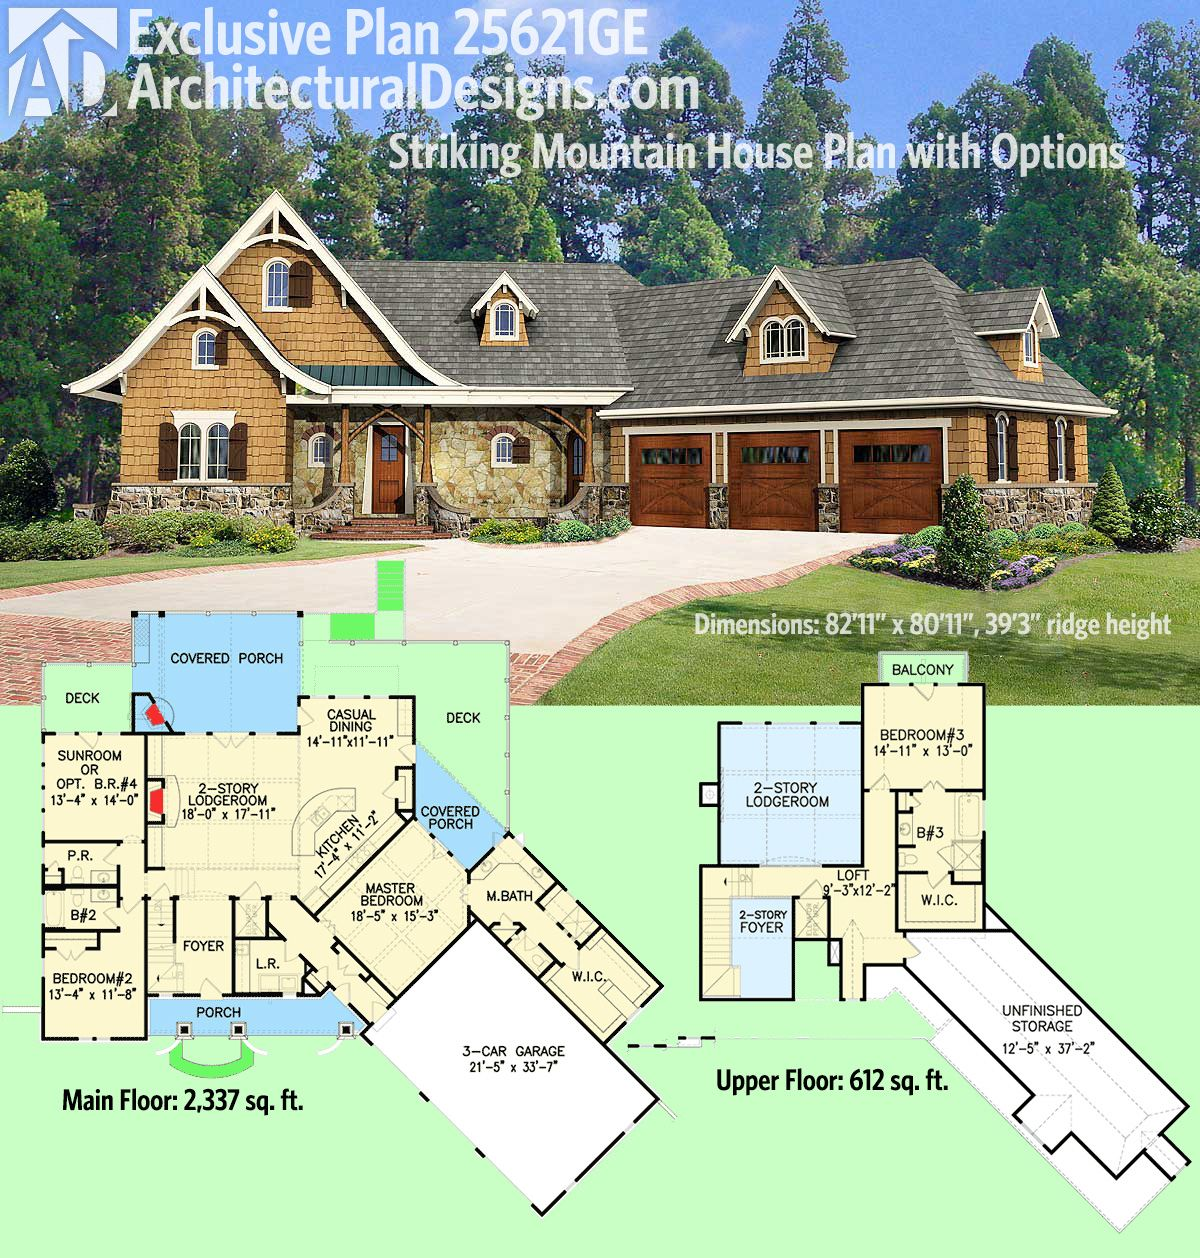 Plan 14632rk Rugged Craftsman With Room Over Garage: Plan 25621GE: Striking Mountain House Plan With Options In